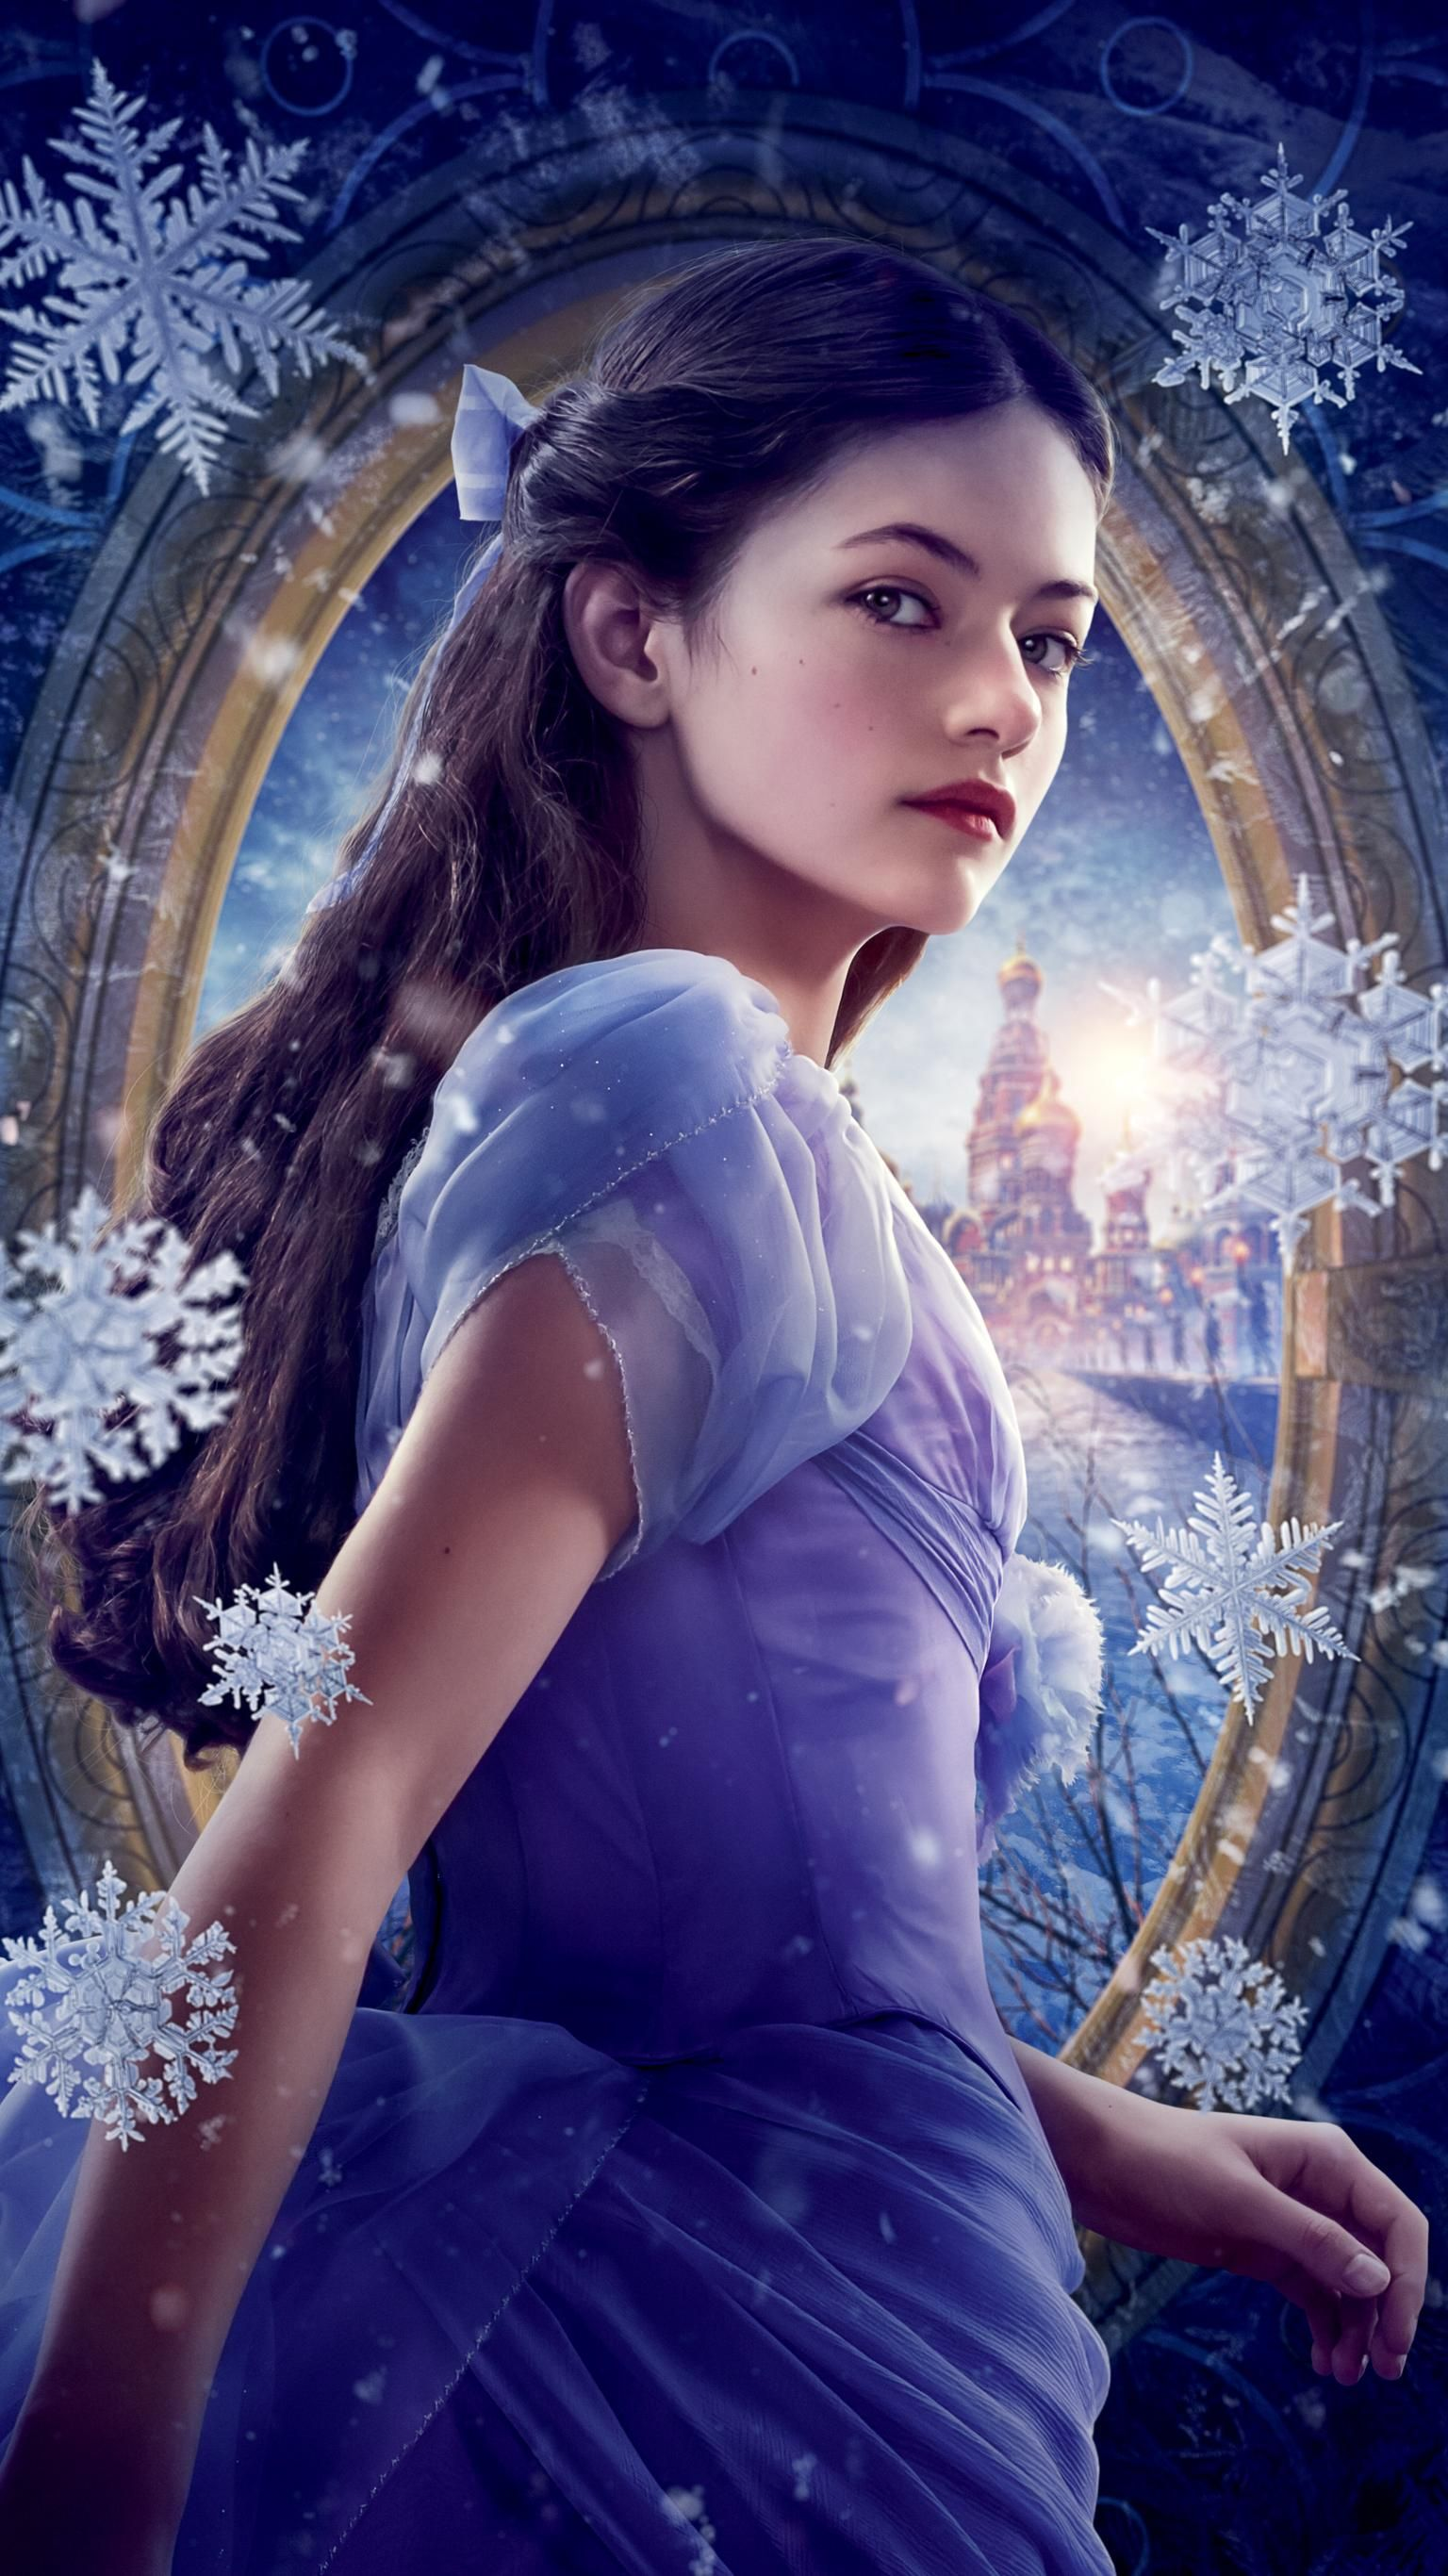 The Nutcracker and the Four Realms 2018 Phone Wallpaper in 2019 1536x2732